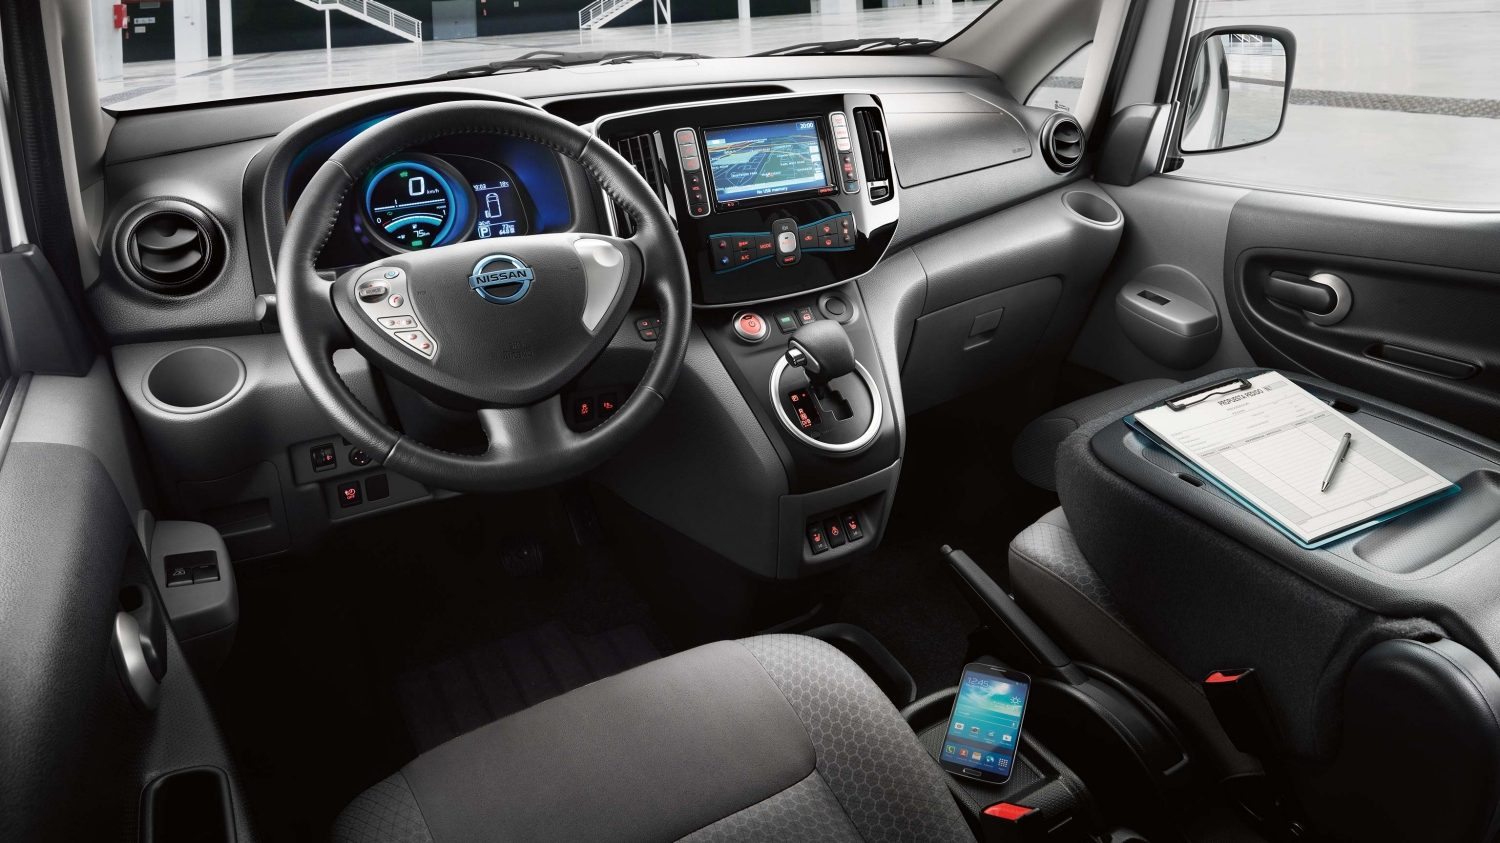 NISSAN e-NV200 – habitacle transformé en bureau mobile